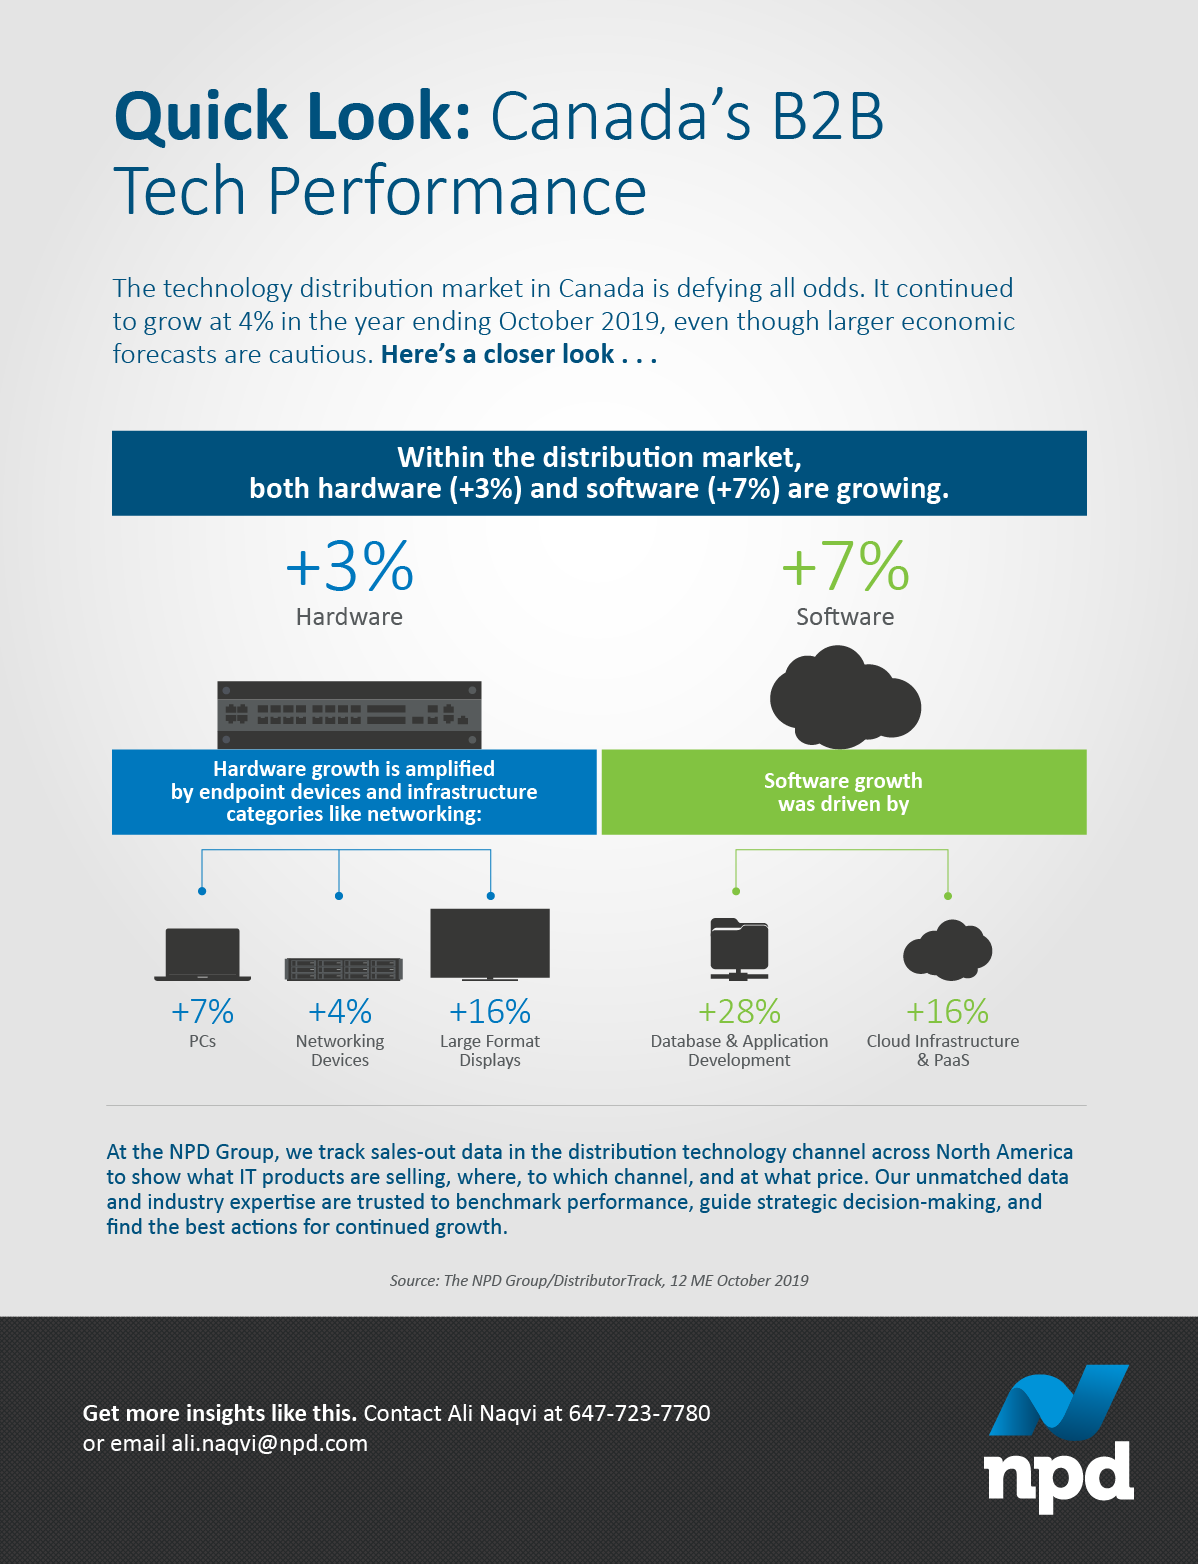 Within the technology distribution market, both hardware (+3%) and software (+7%) are on the rise. Take a closer look at some of the categories we've got our eye on.